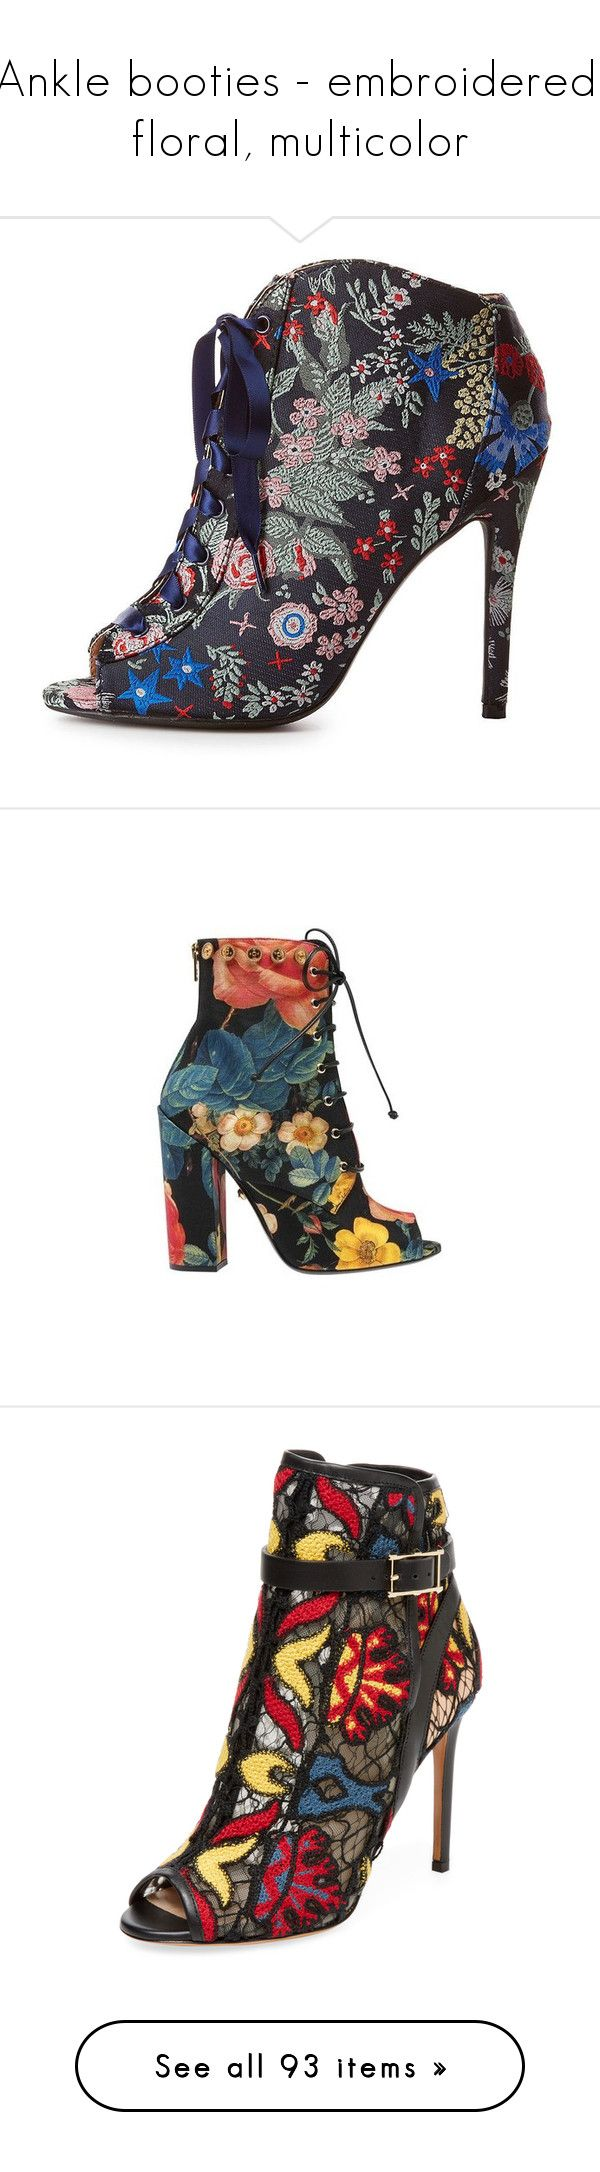 """Ankle booties - embroidered, floral, multicolor"" by leaff88 ❤ liked on Polyvore featuring shoes, boots, ankle booties, navy, sexy booties, qupid booties, navy booties, navy blue boots, navy blue booties and casual"